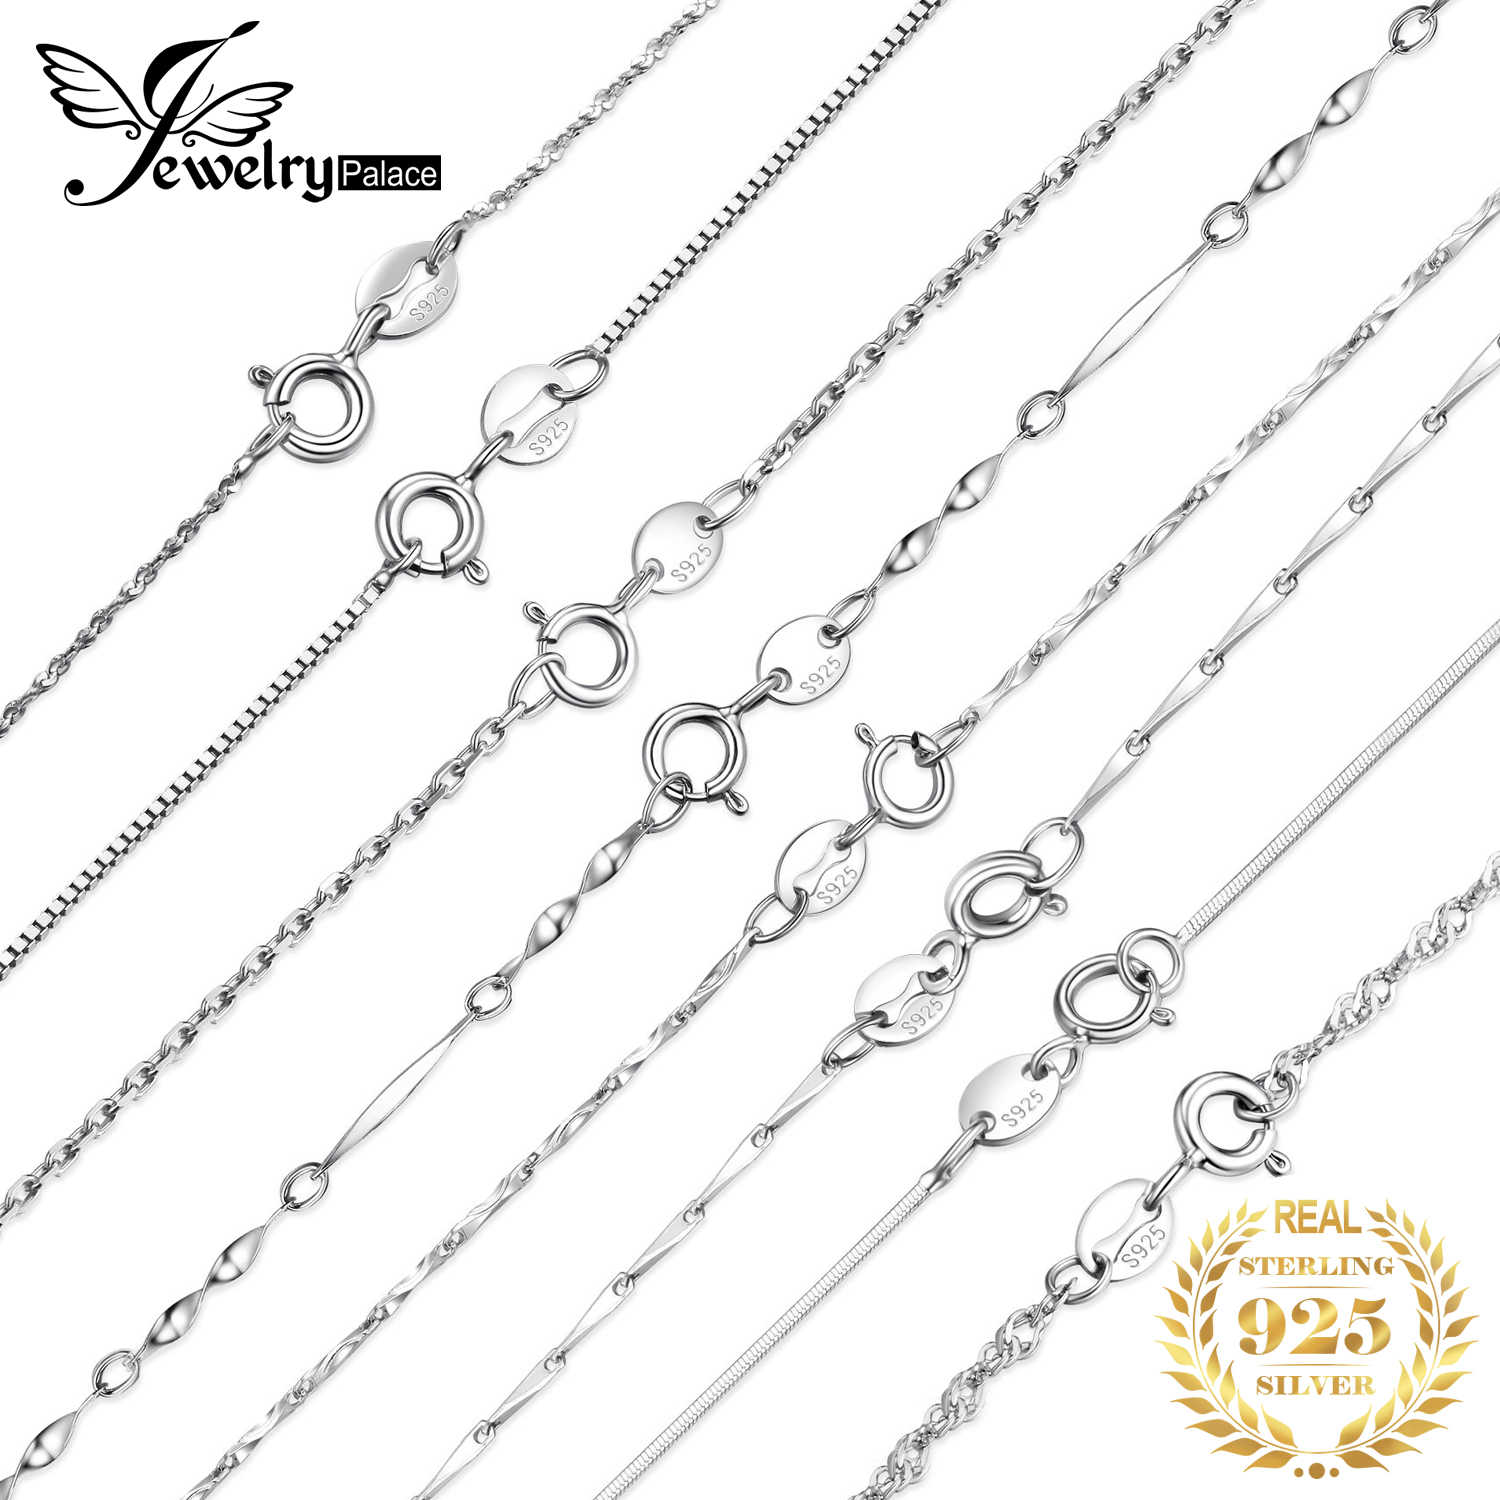 JewelryPalace 100% Genuino Argento 925 Collana In Argento Lingotto Torto Traccia Belcher Del Serpente Bar Singapore Box Donne Co